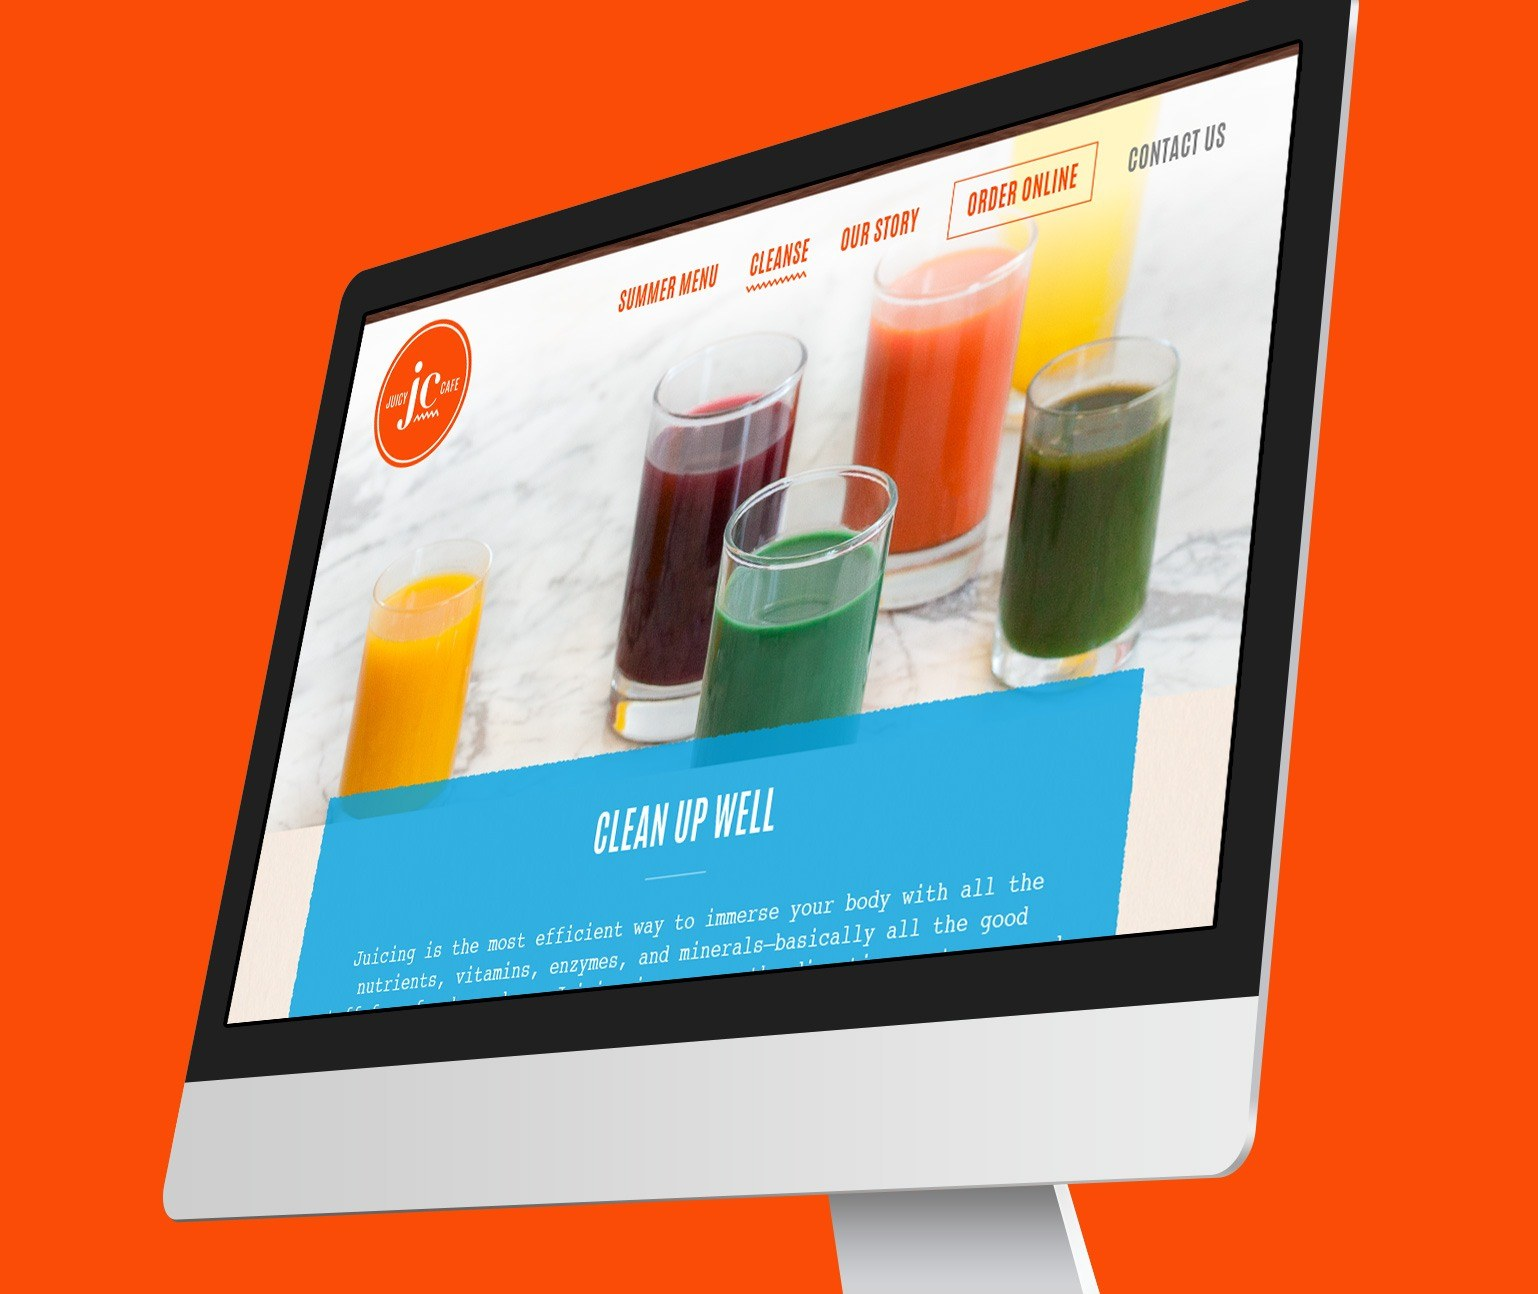 Juicy Cafe website design shown on computer monitor with an orange background